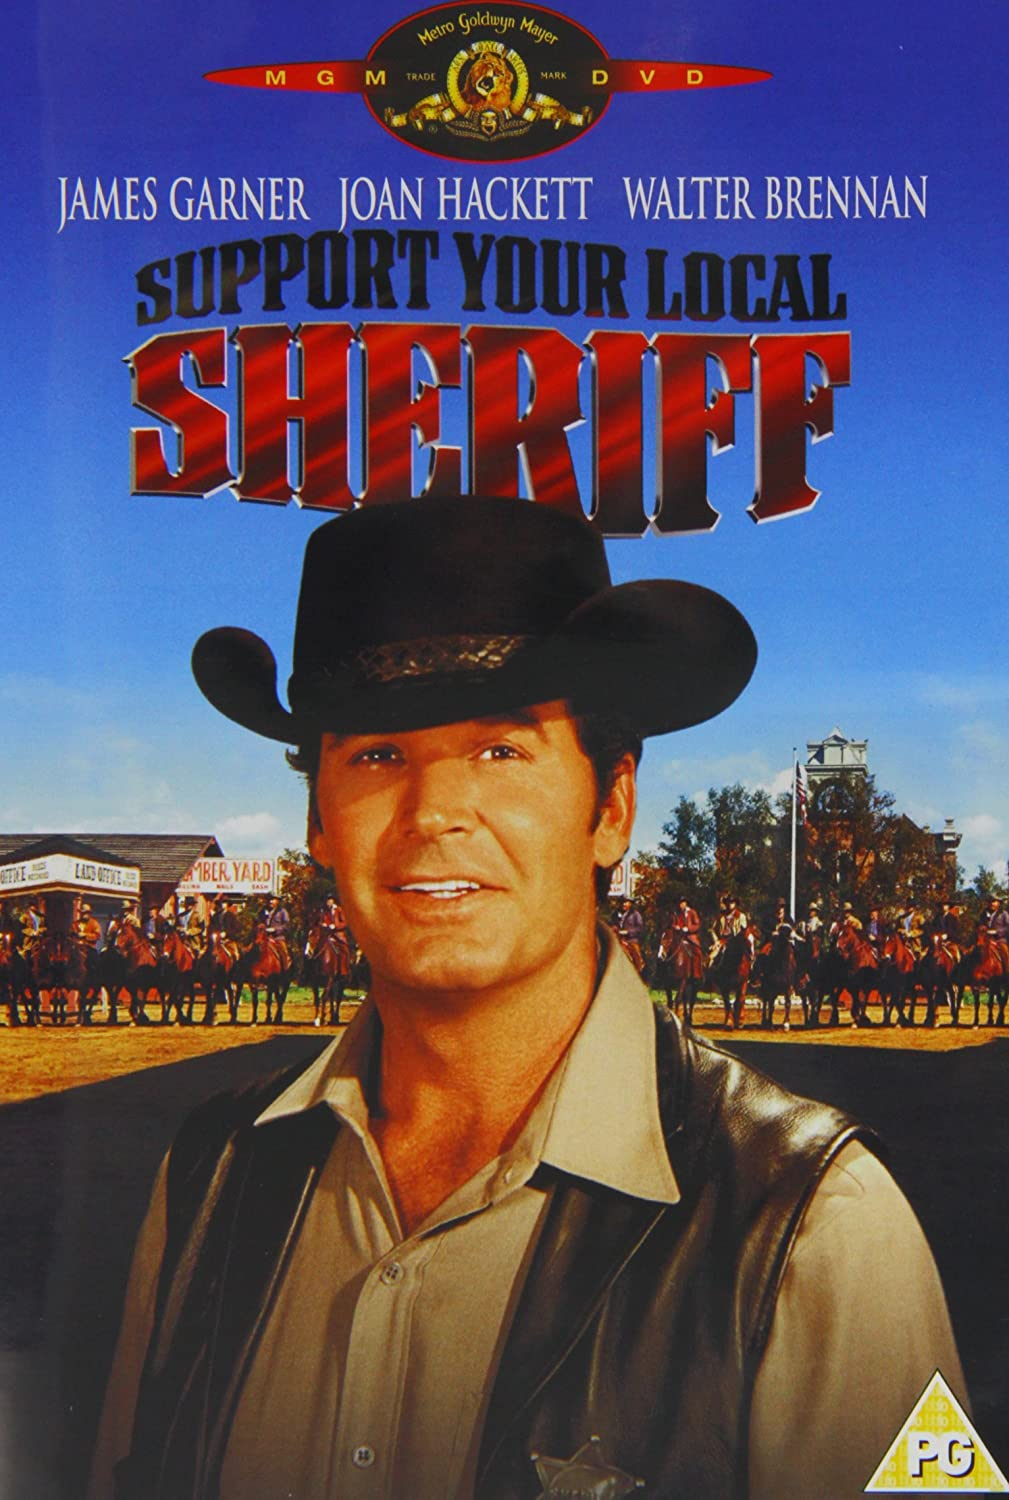 Amazon.com: Support Your Local Sheriff!: James Garner, Joan ...